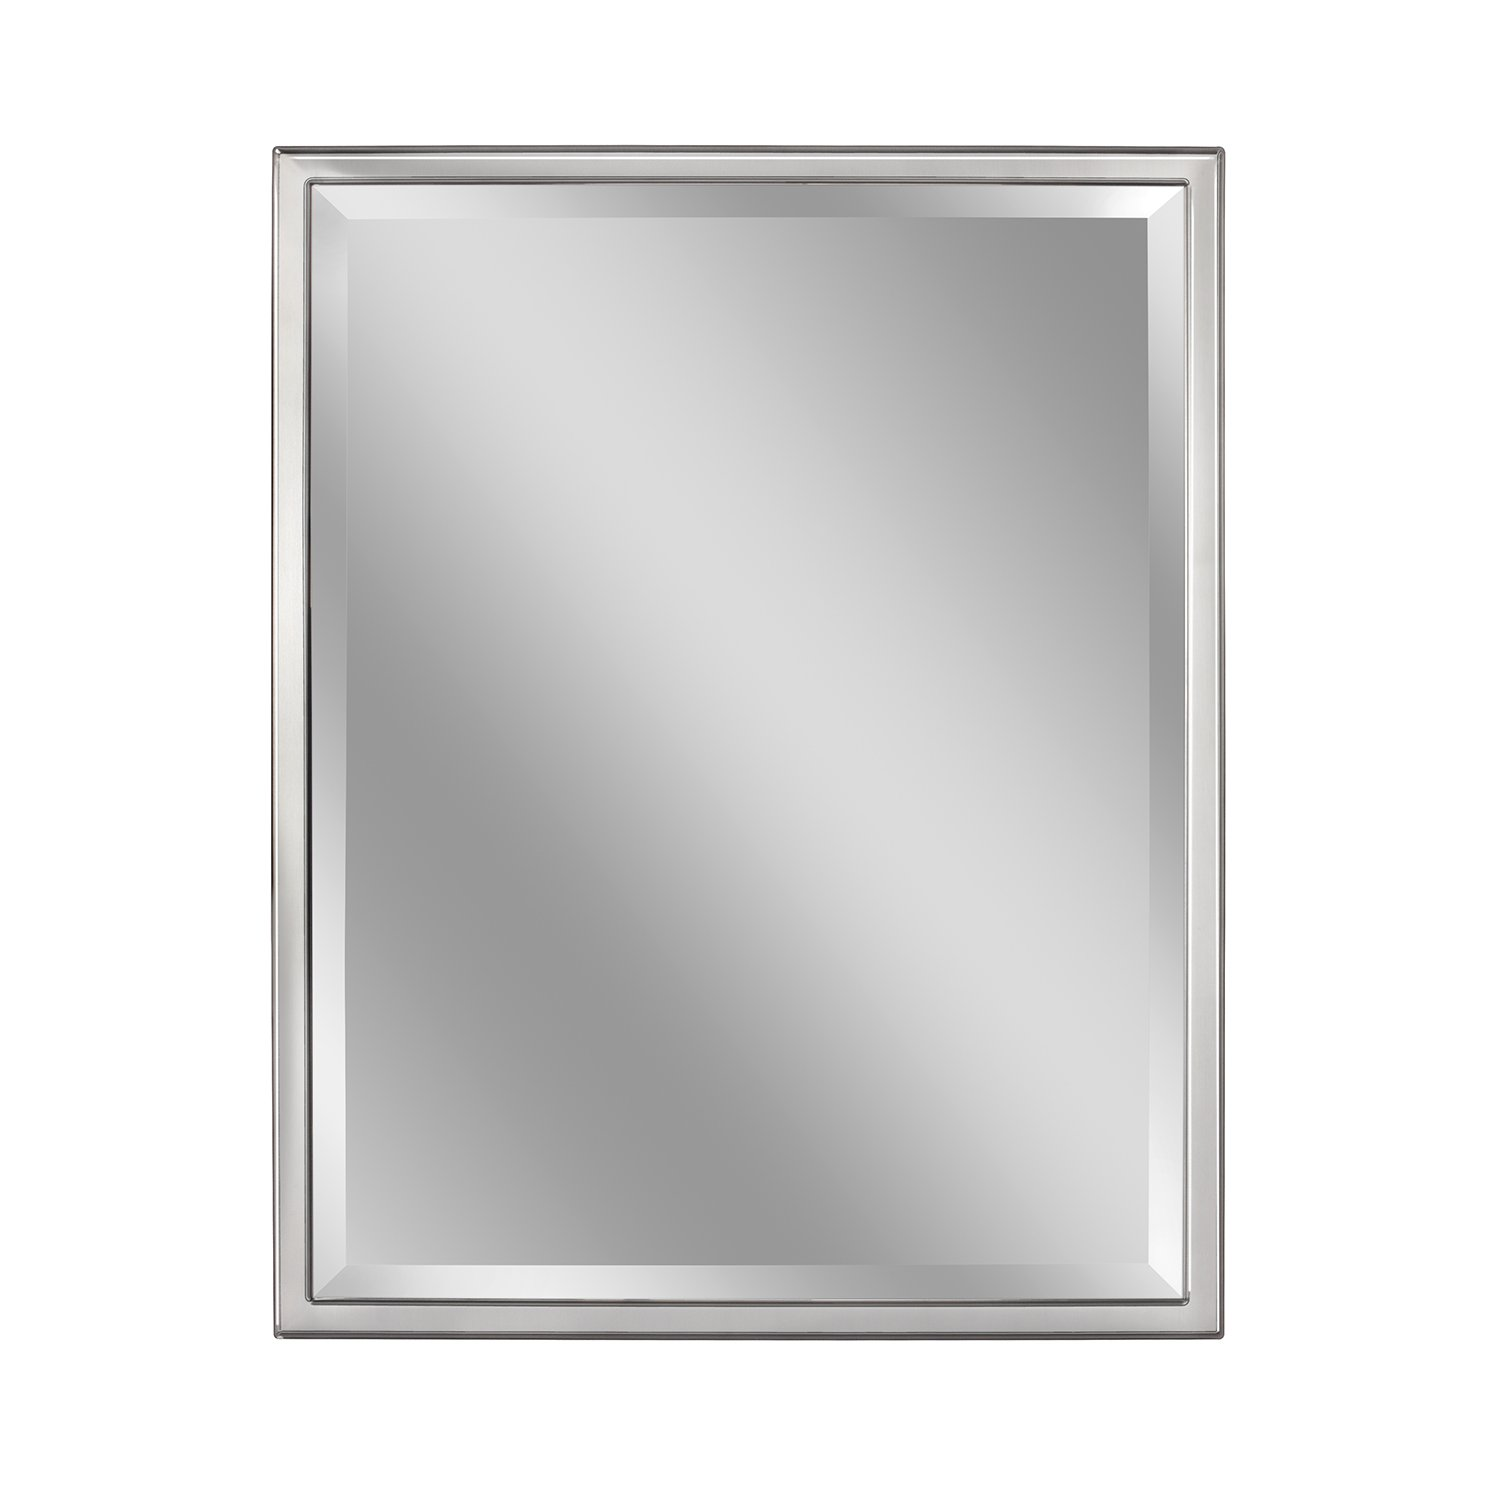 Head West 24 x 30 Classic Chrome 1 in. Wide Metal Frame Wall Mirror